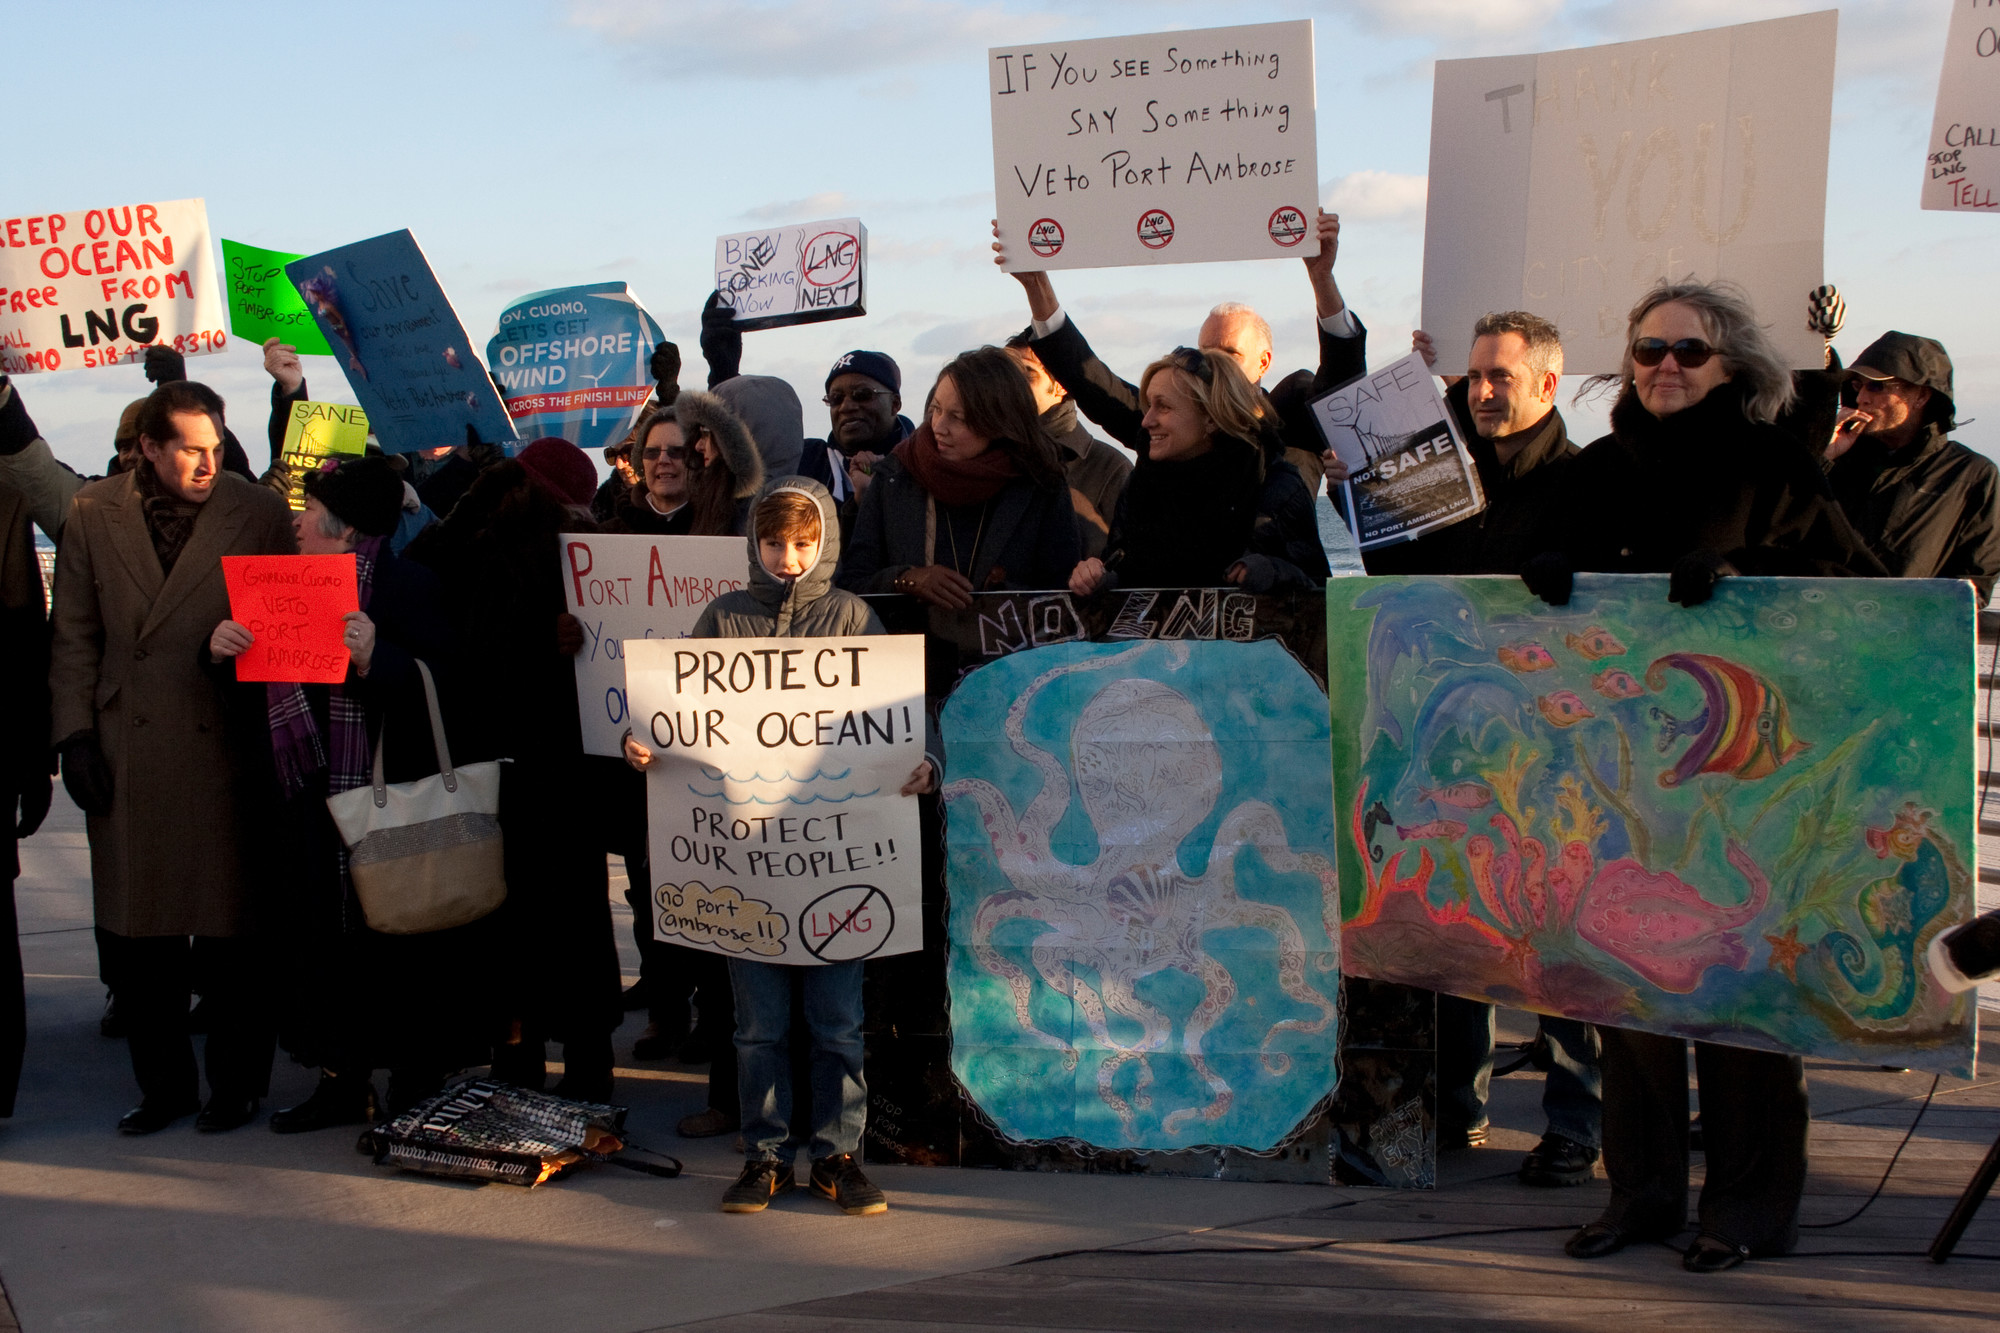 Protestors criticized the proposed Port Ambrose LNG terminal at a press conference on the boardwalk in January.